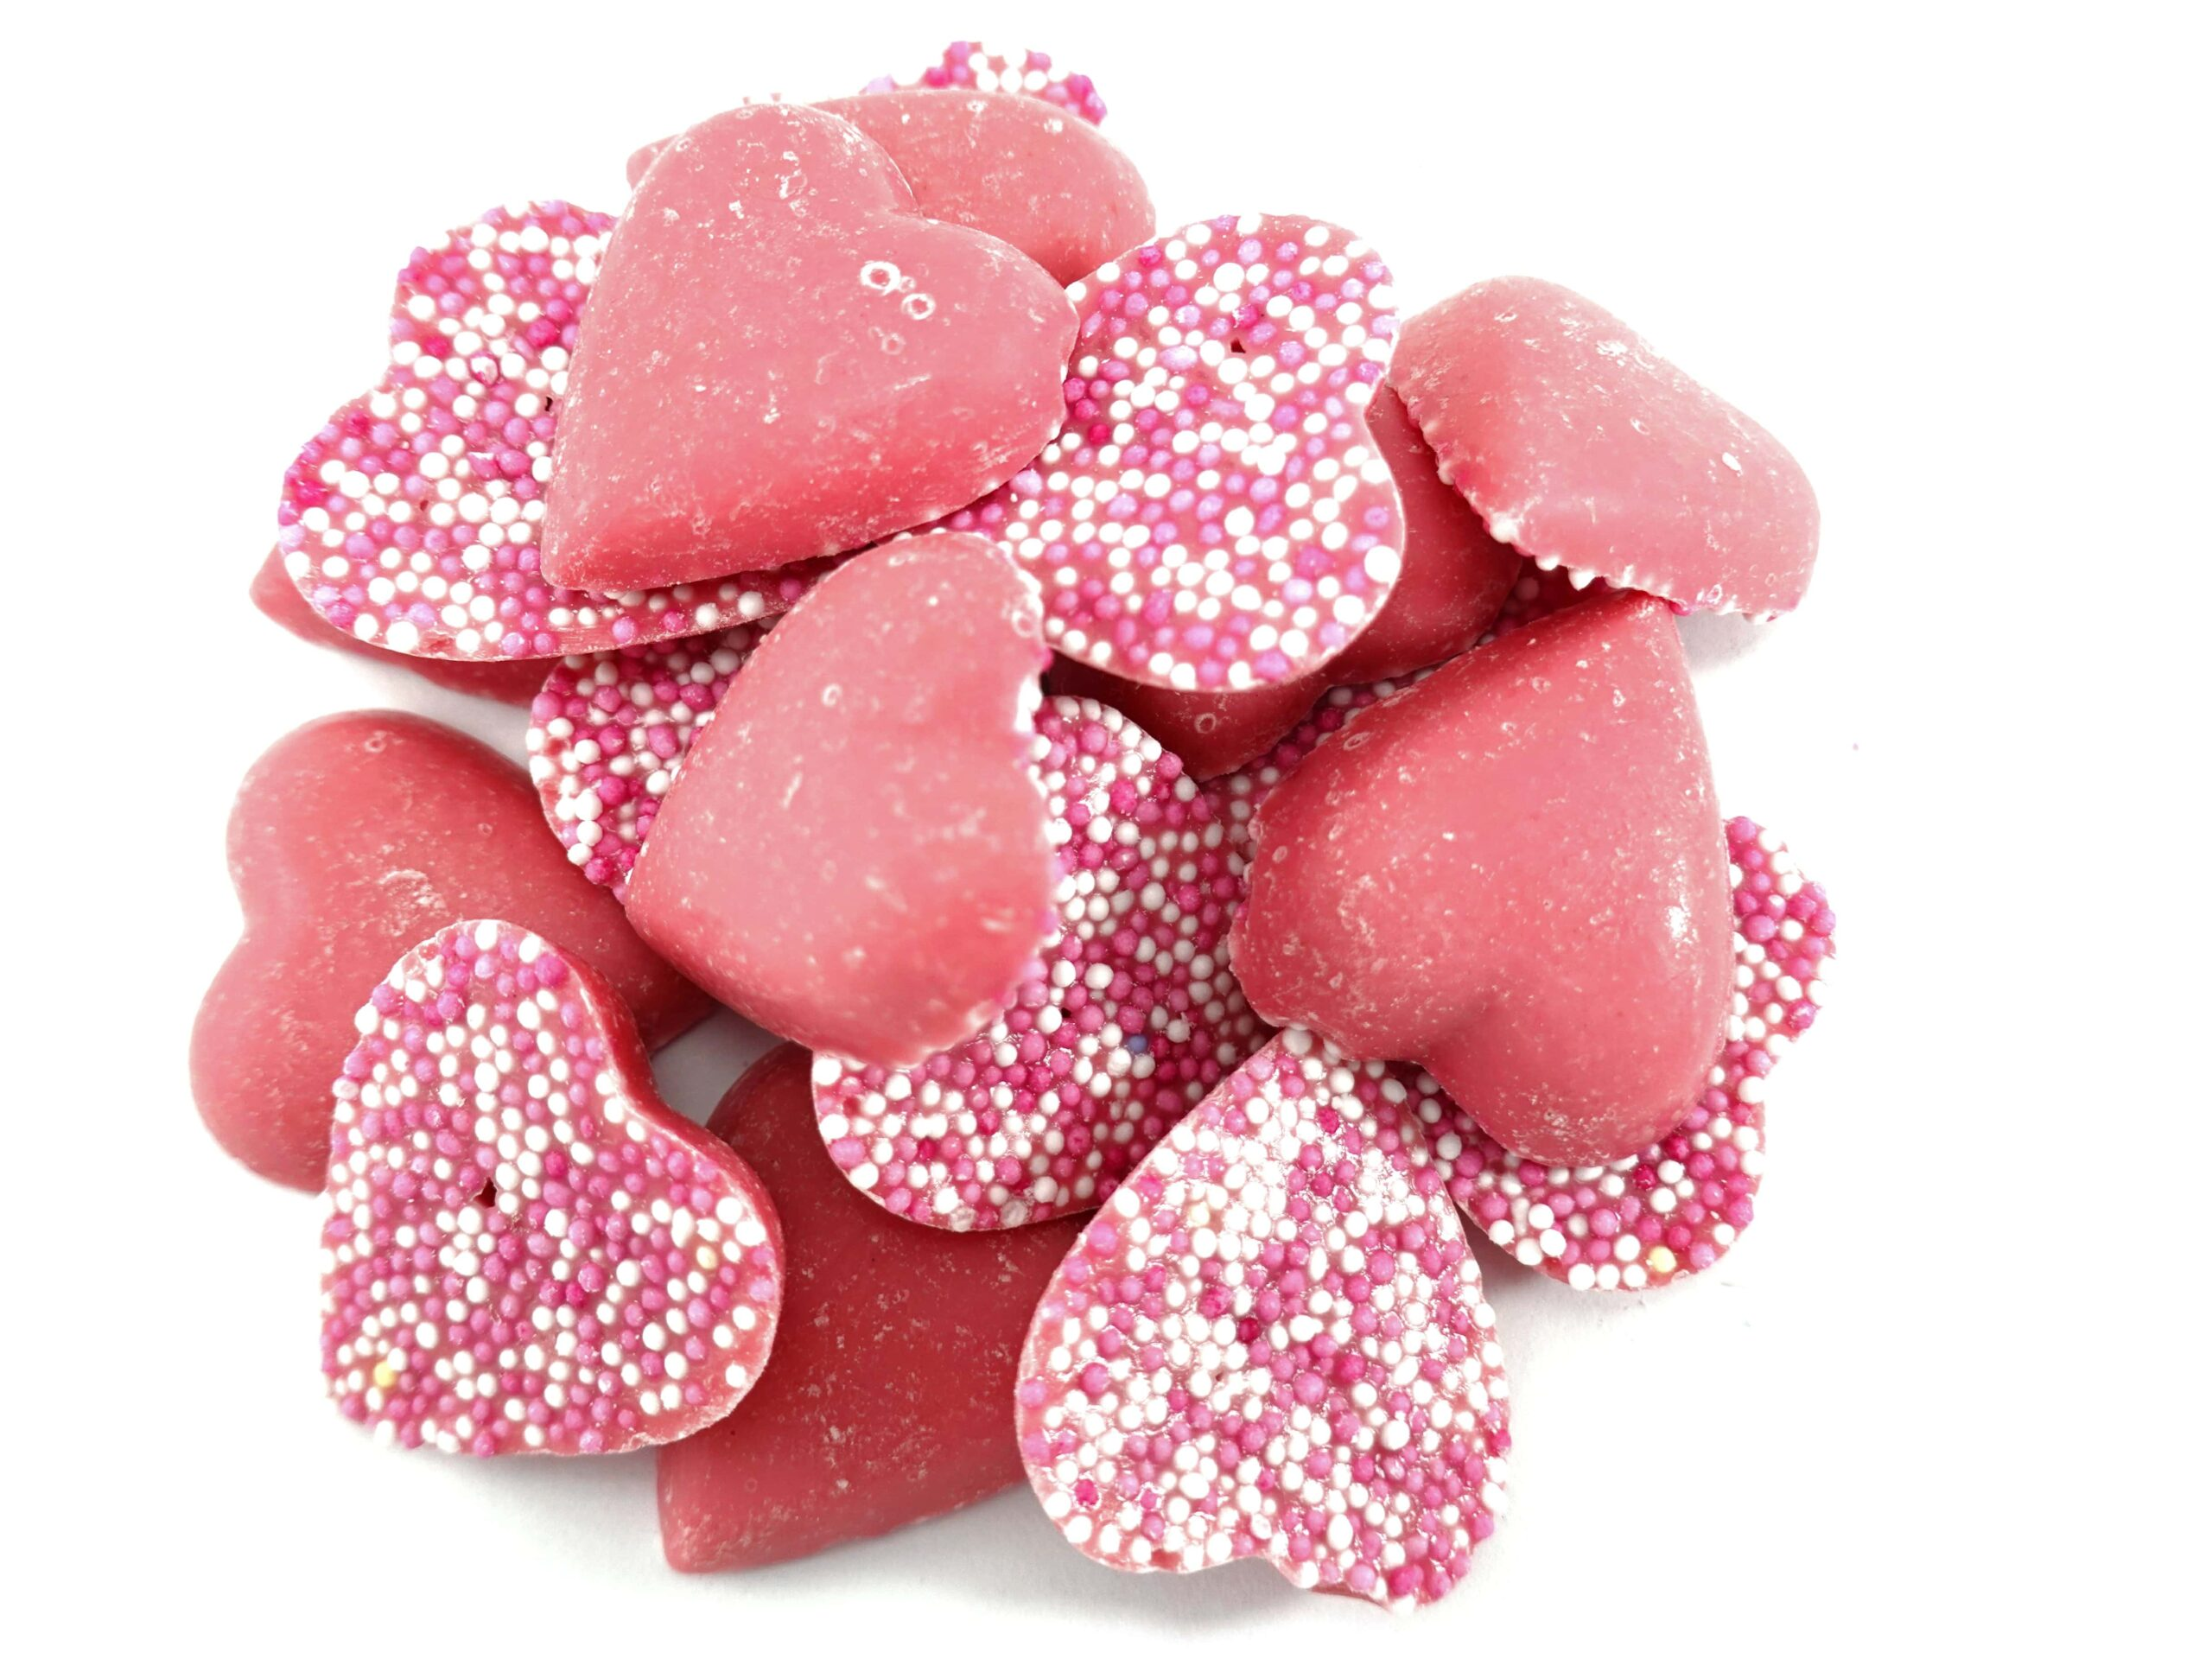 Pink chocolate in heart shapes